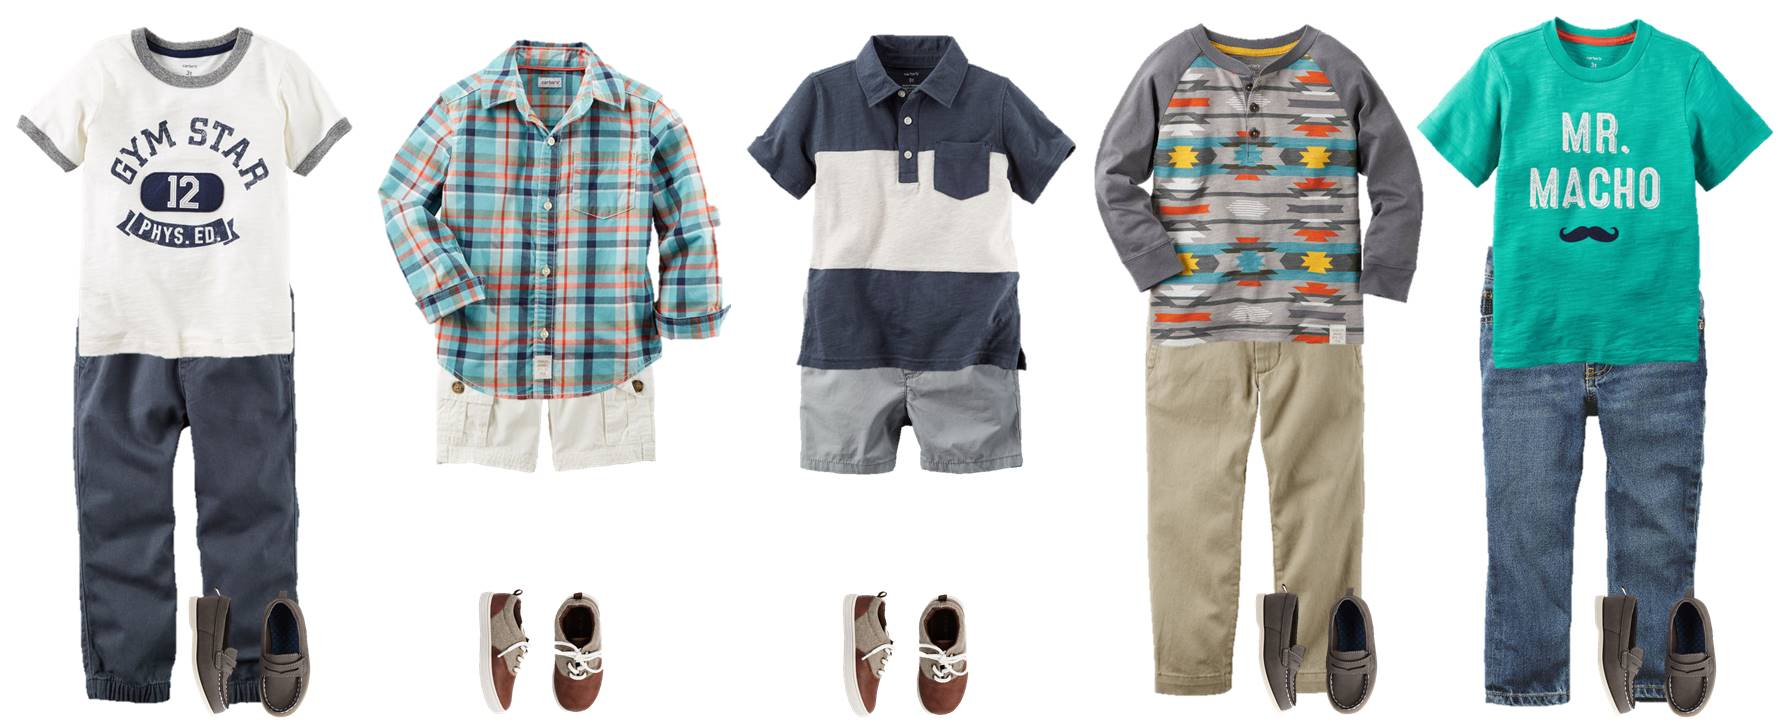 Back to School time is almost here! These outfits from Carter's are SO adorable and very affordable (oh, and there's a coupon code now too!). Get your little man decked out for back to school and let him show off his own cool style.